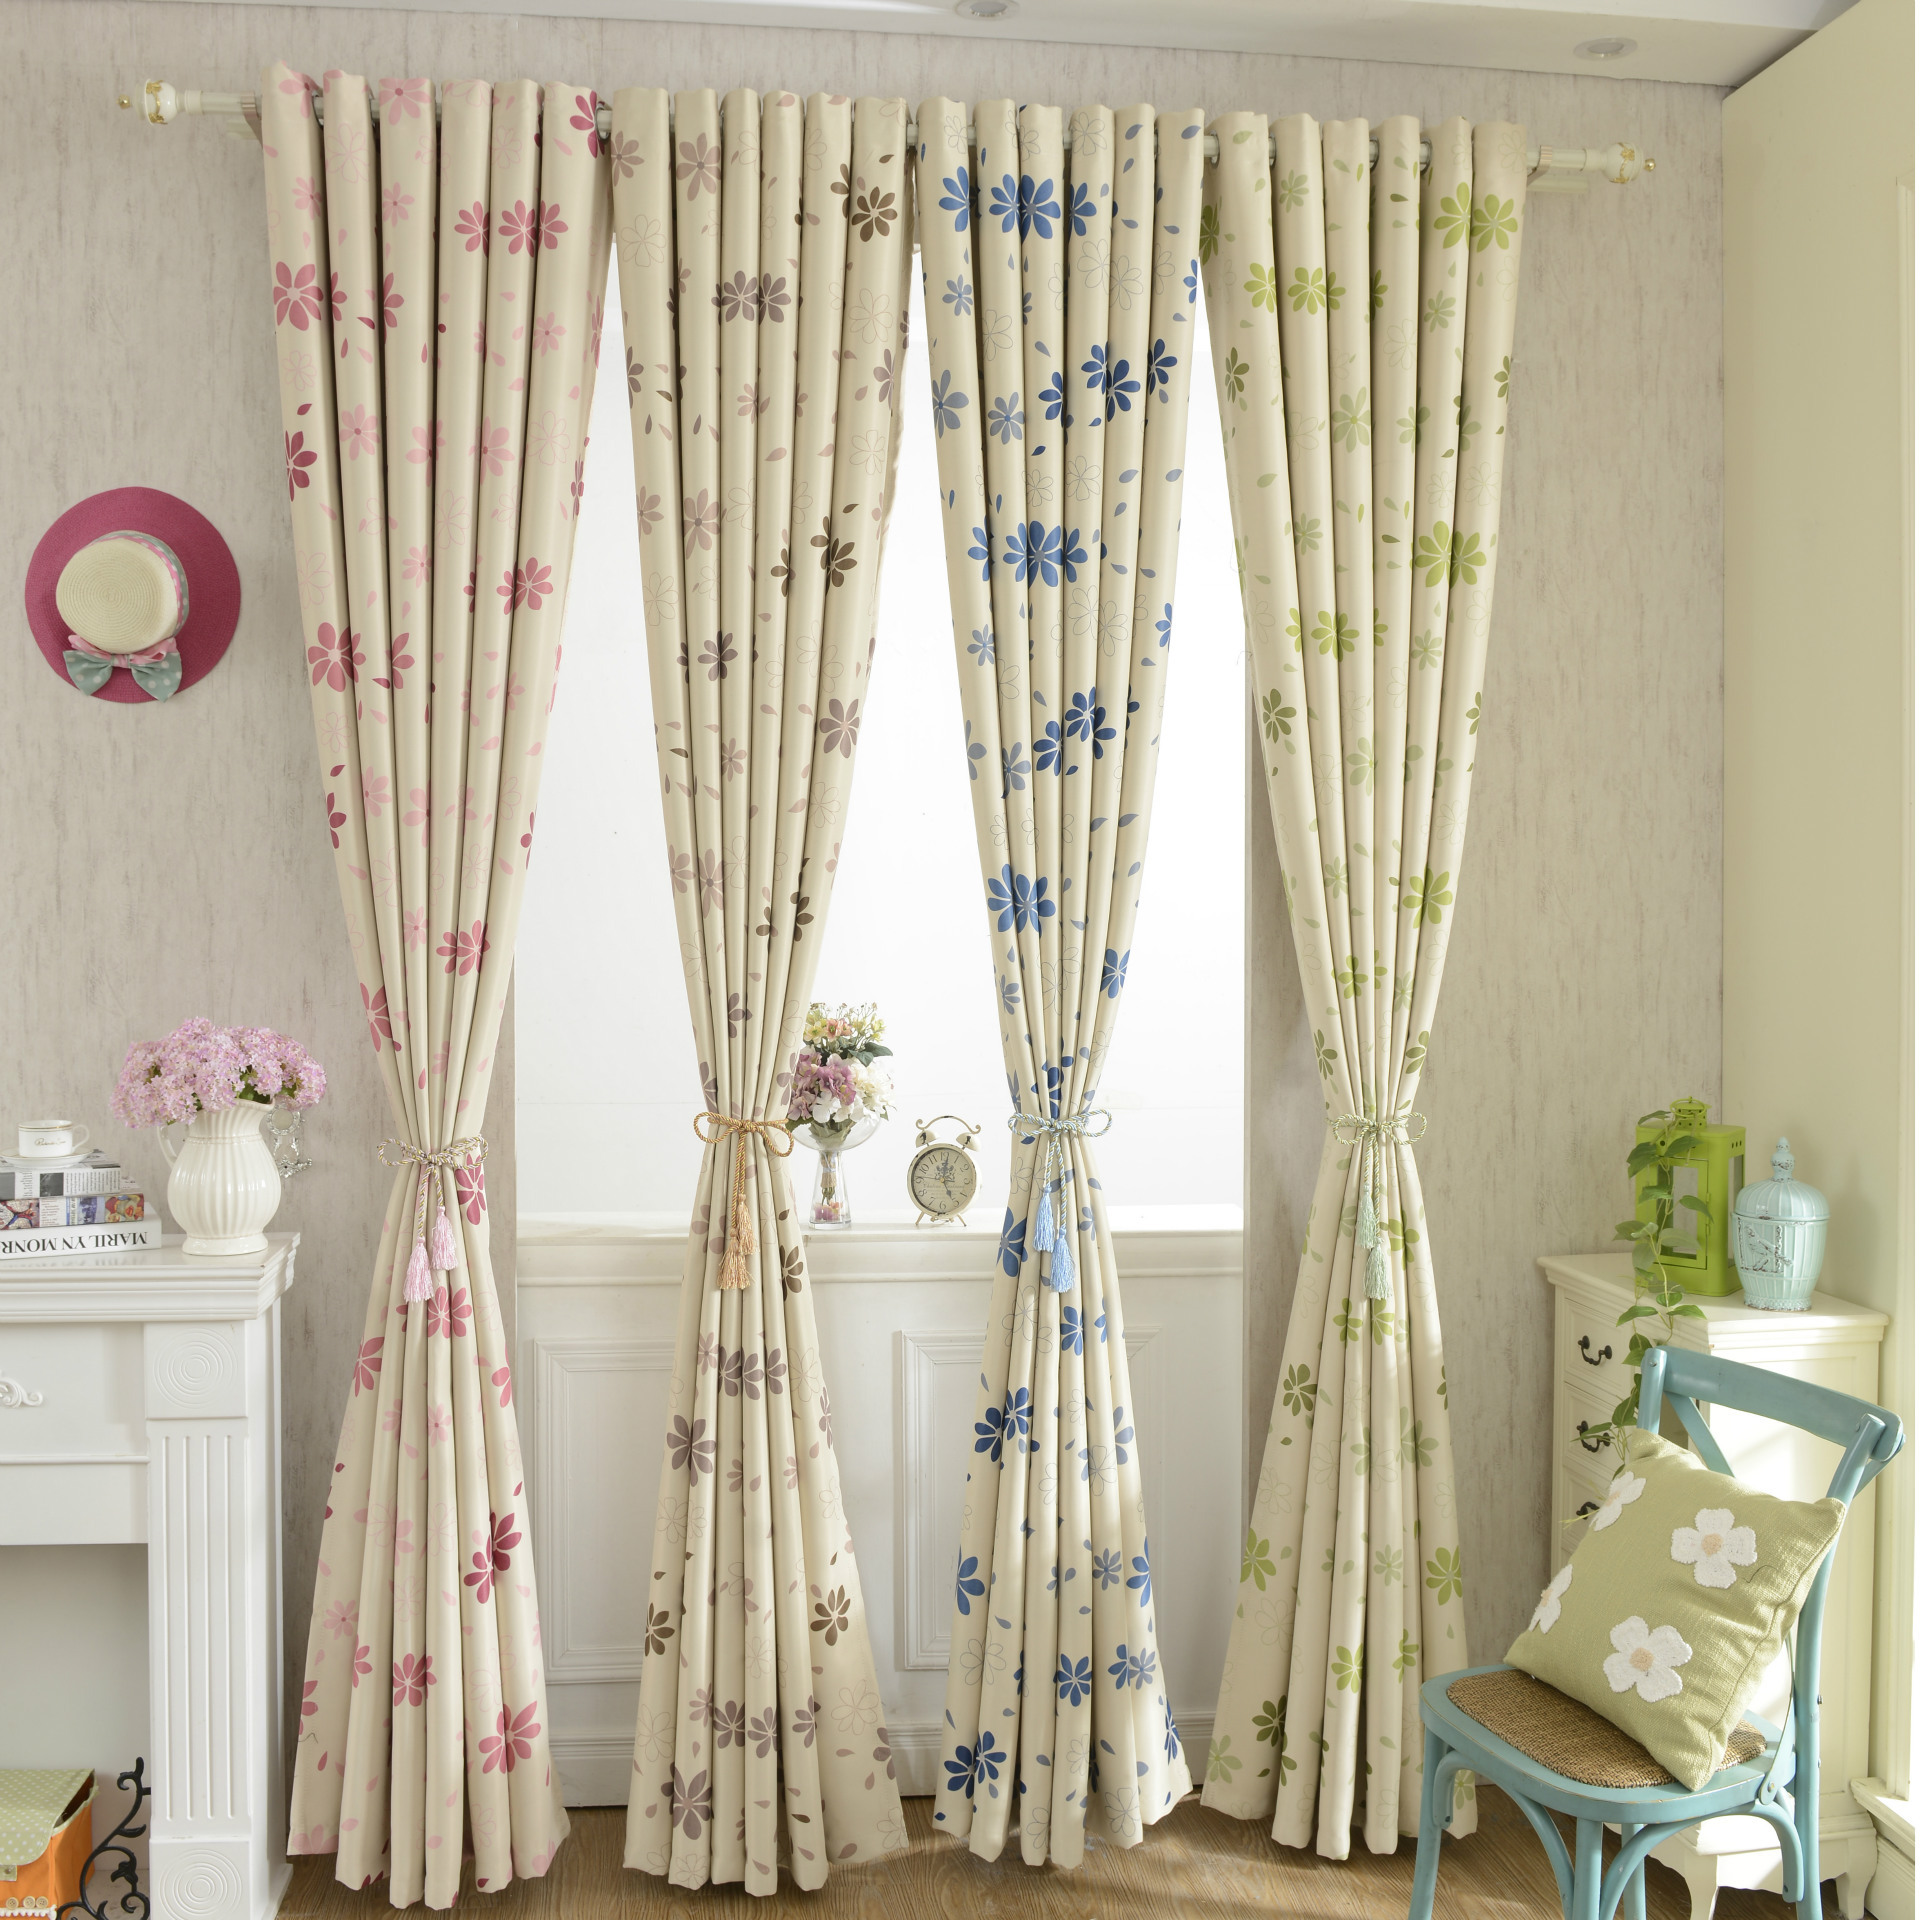 High quality 100 poly shading curtains flower printing for Tende a vetro per cucina classica